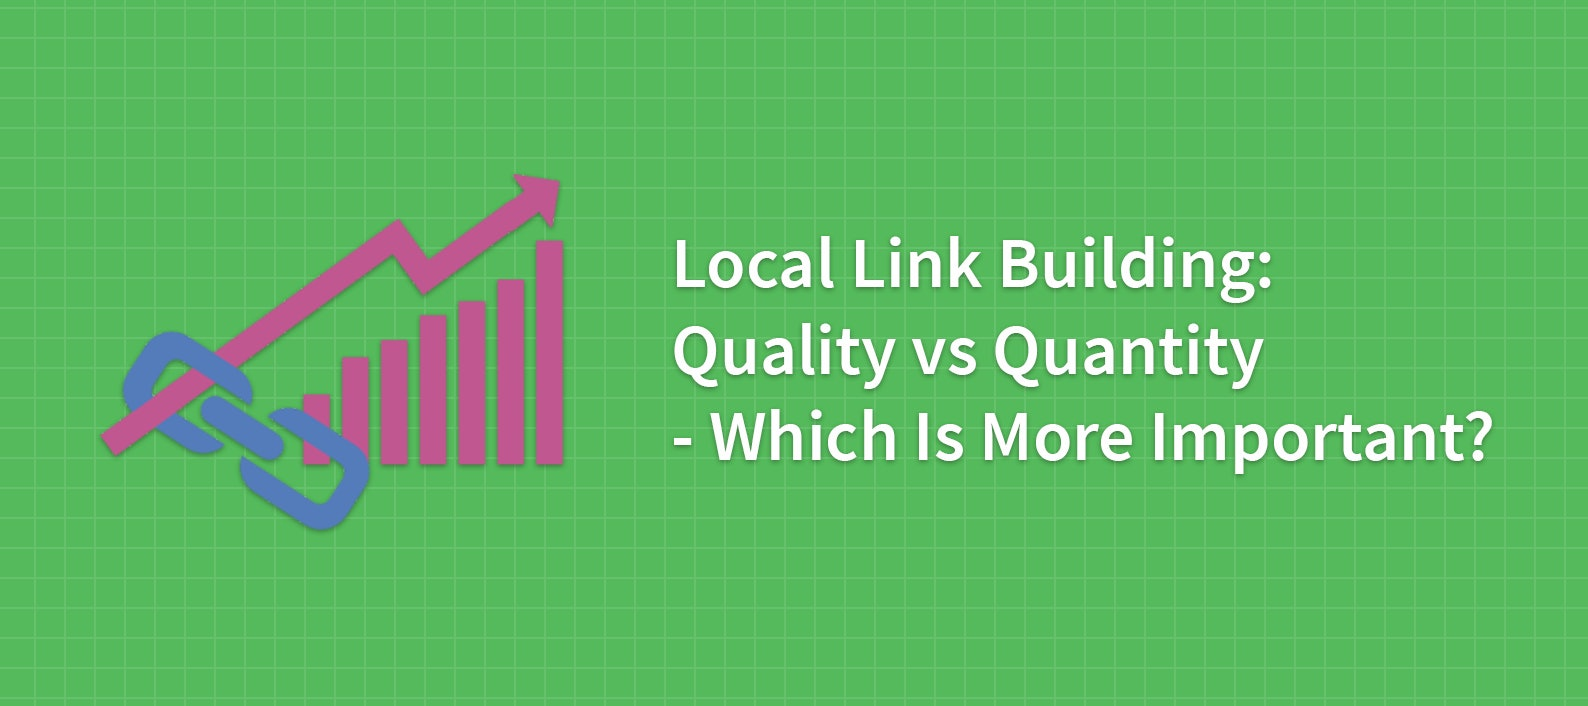 Local Link Building: Quality vs Quantity – Which Is More Important?